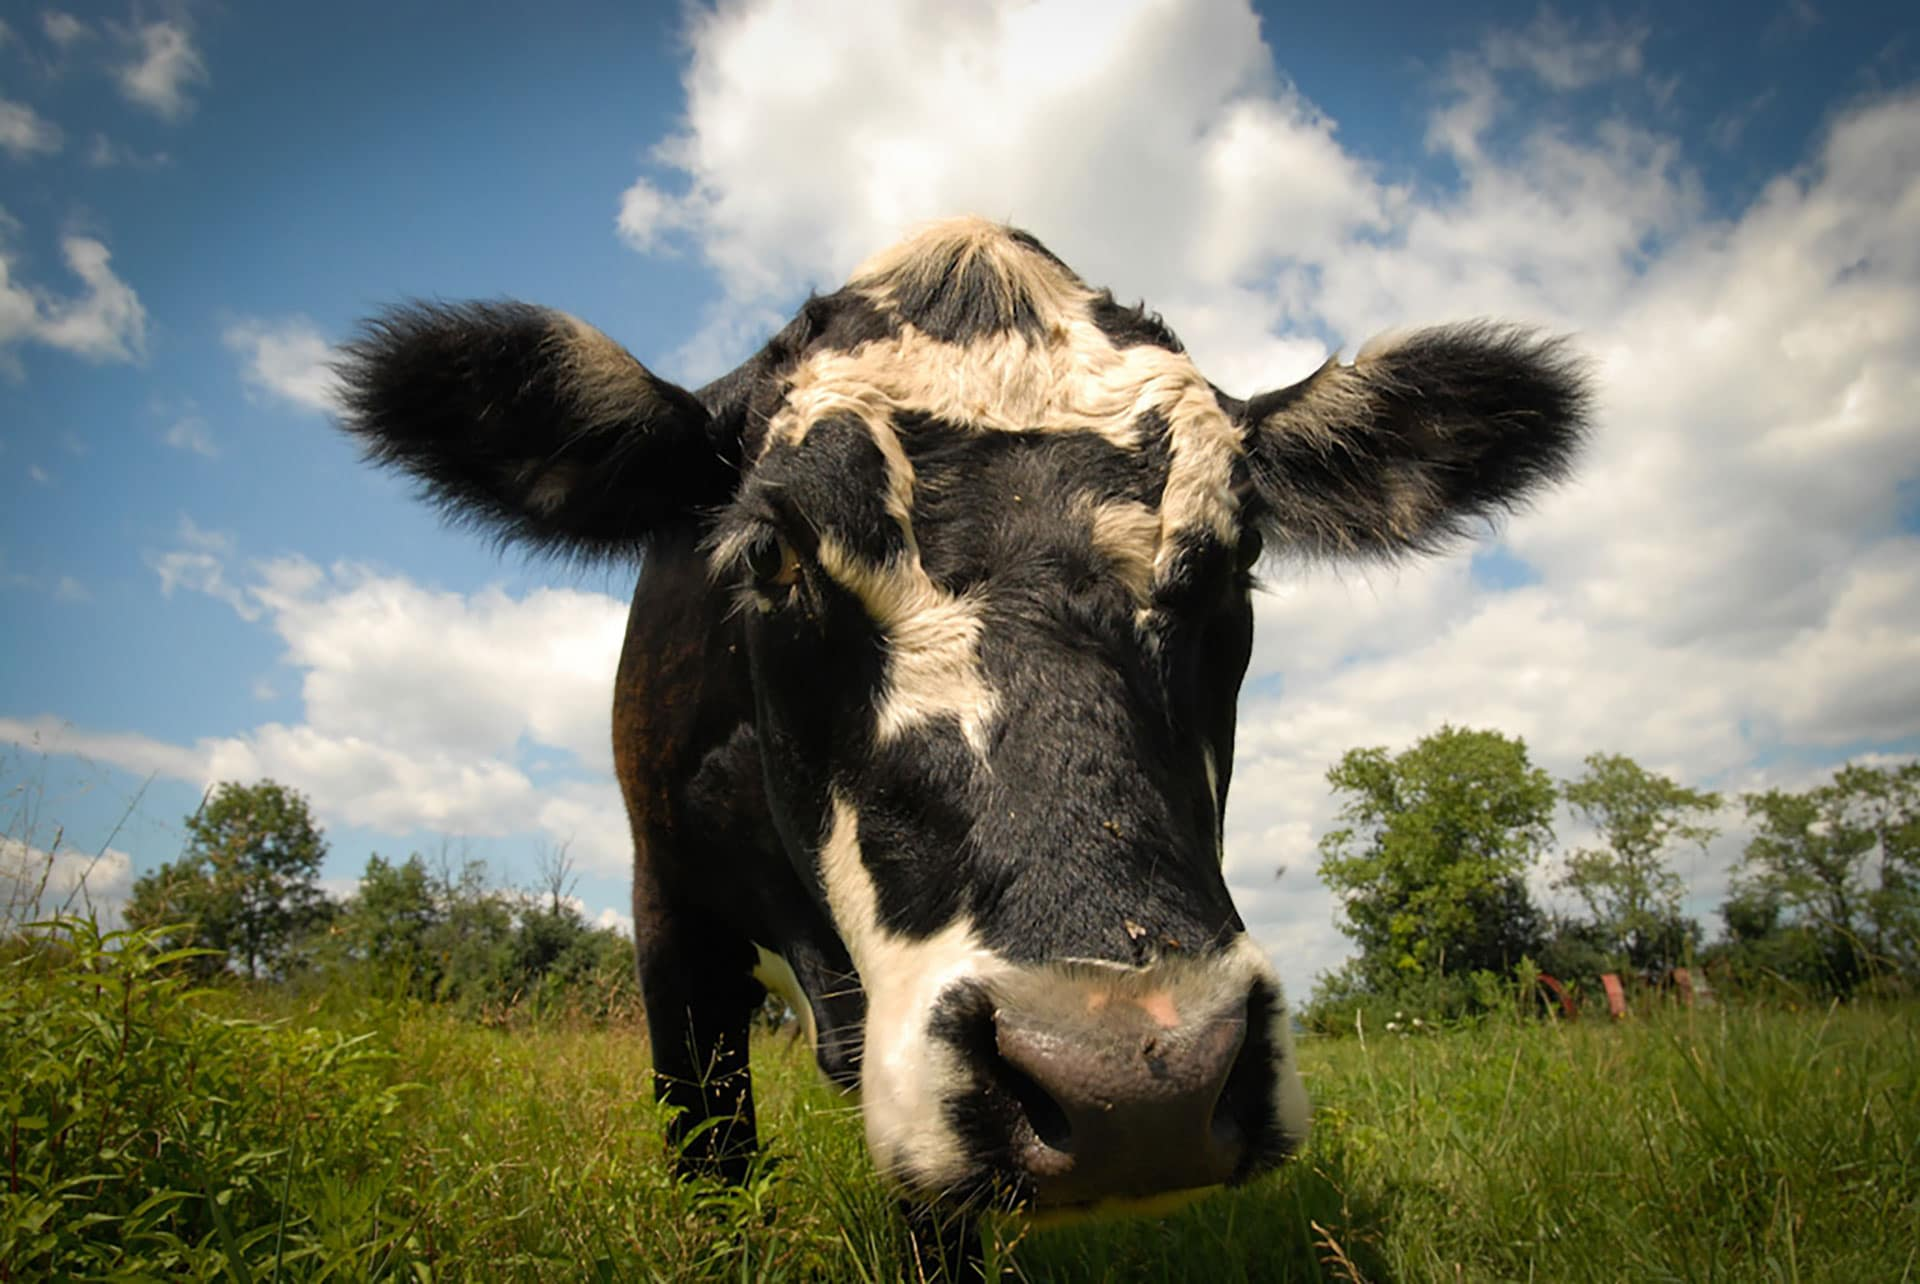 A closeup of a black and white spotted cow in a field of grass.